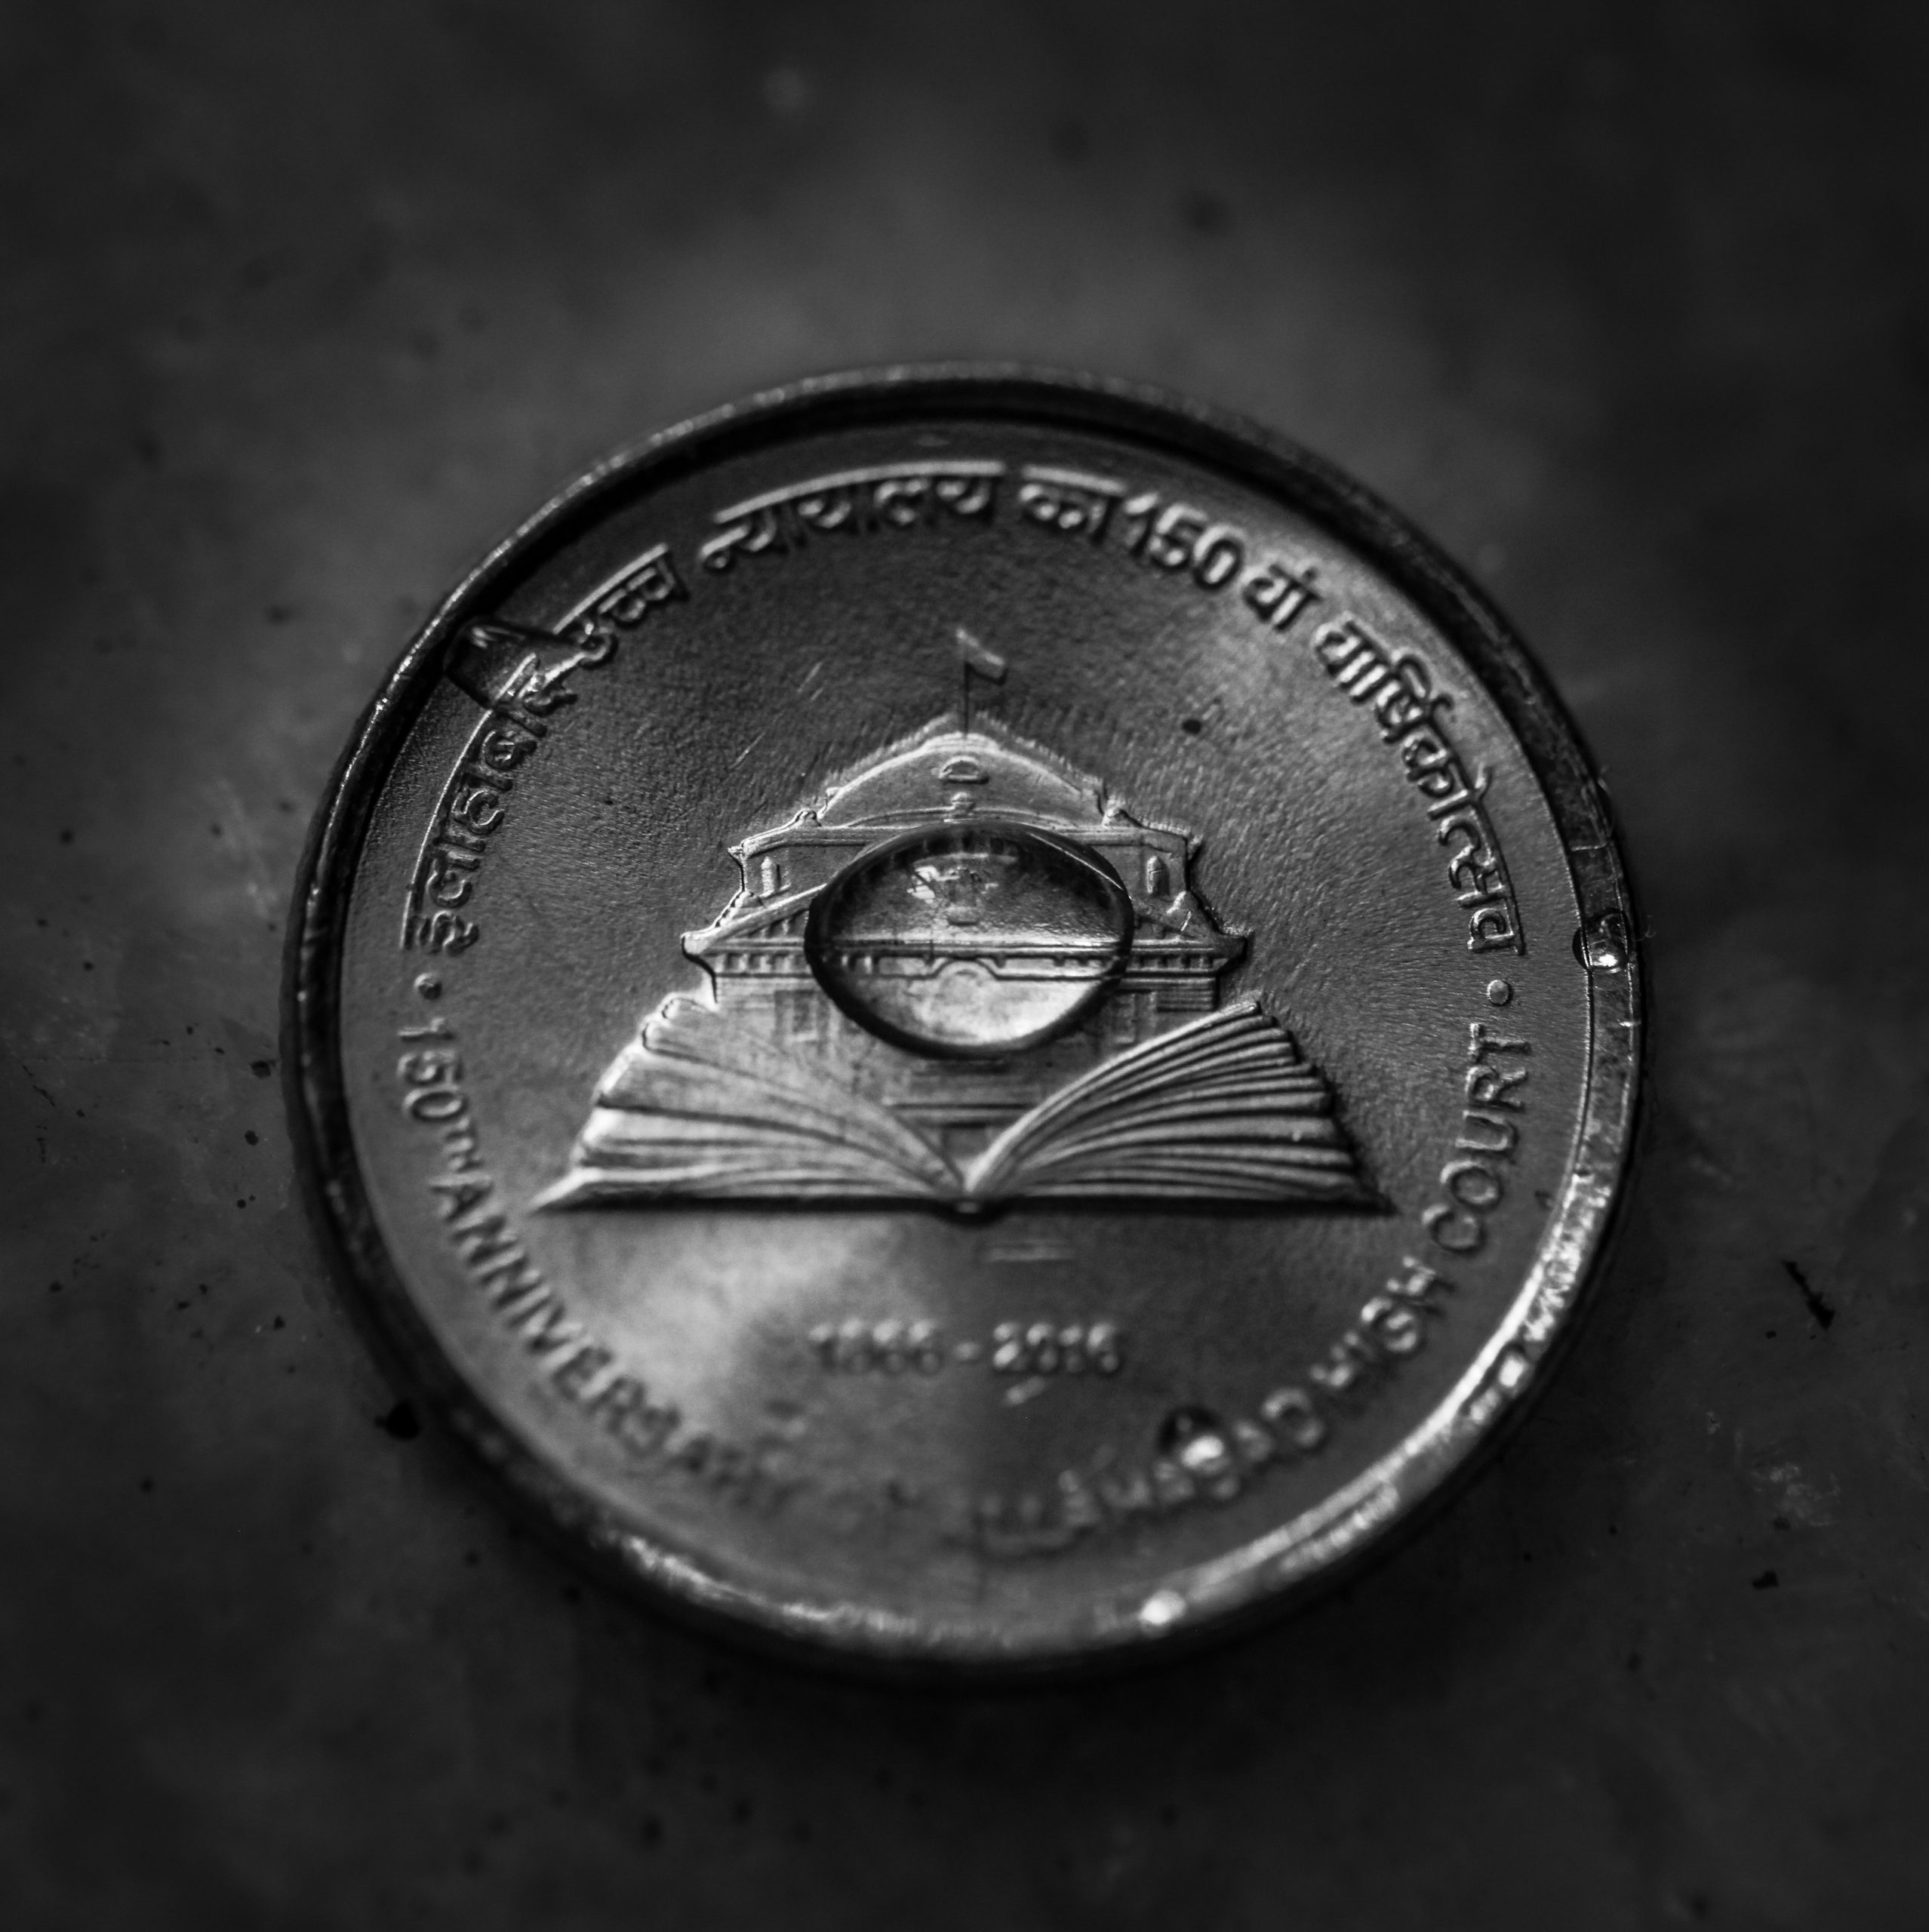 Water drop on coin